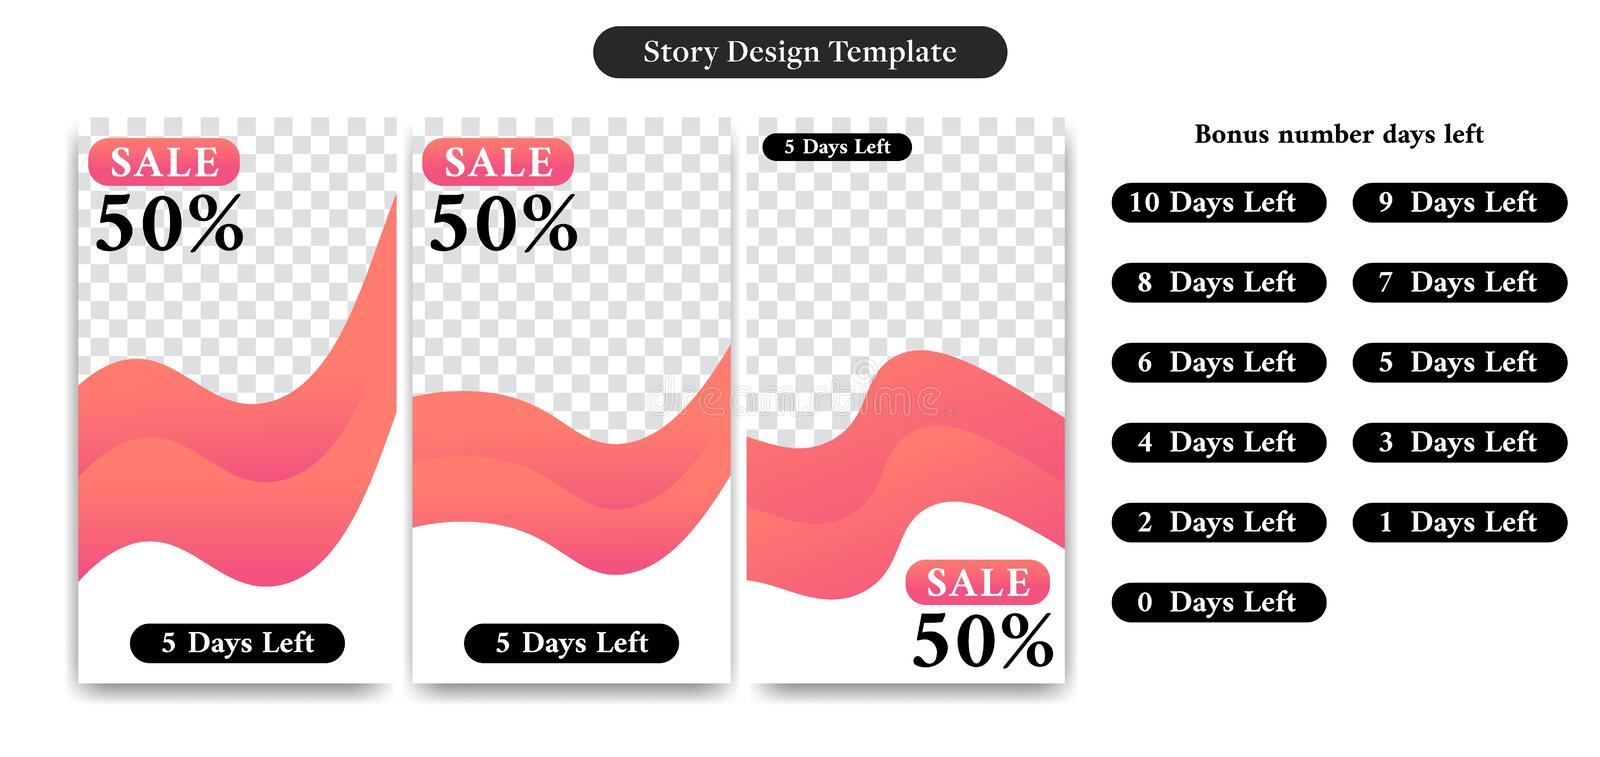 Editable Social media story design template for sale discount, ad, promotion, banner, flyer with number days left in trendy curve vector illustration